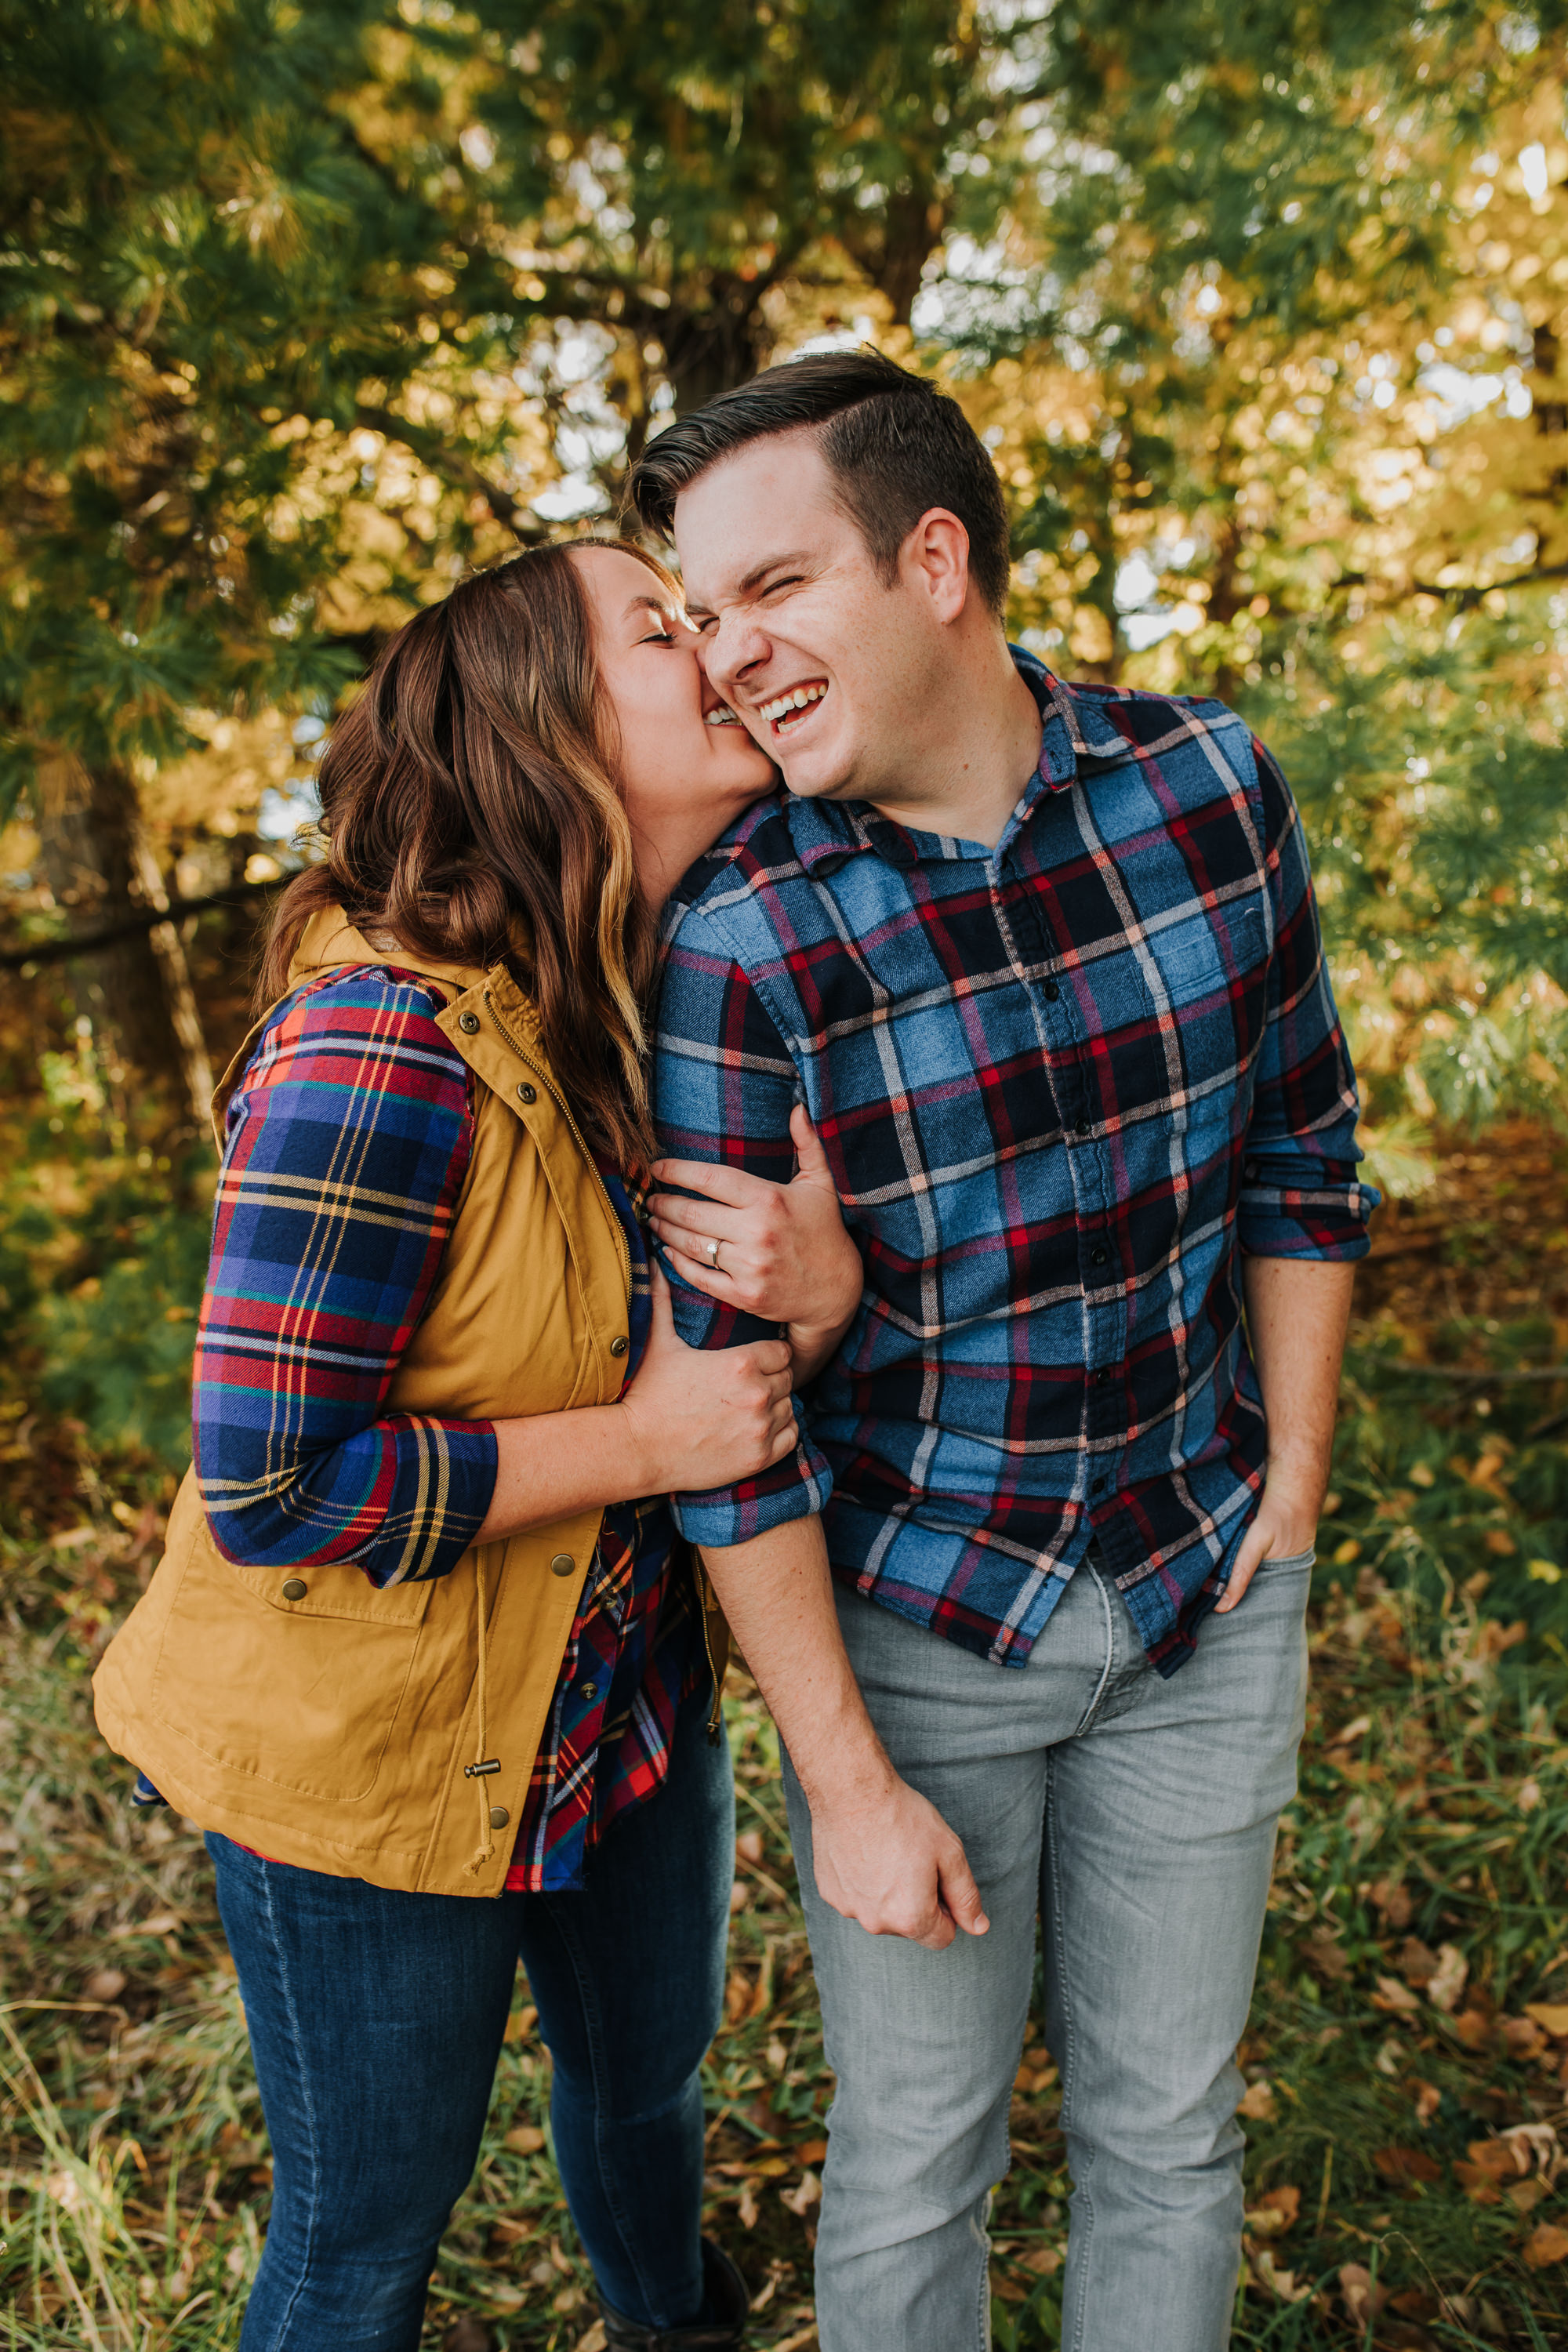 Katie & Adam - Engaged - Nathaniel Jensen Photography - Omaha Nebraska Wedding Photograper - Omaha Nebraska Engagement Session - Chalco Hills Engagement Session-24.jpg